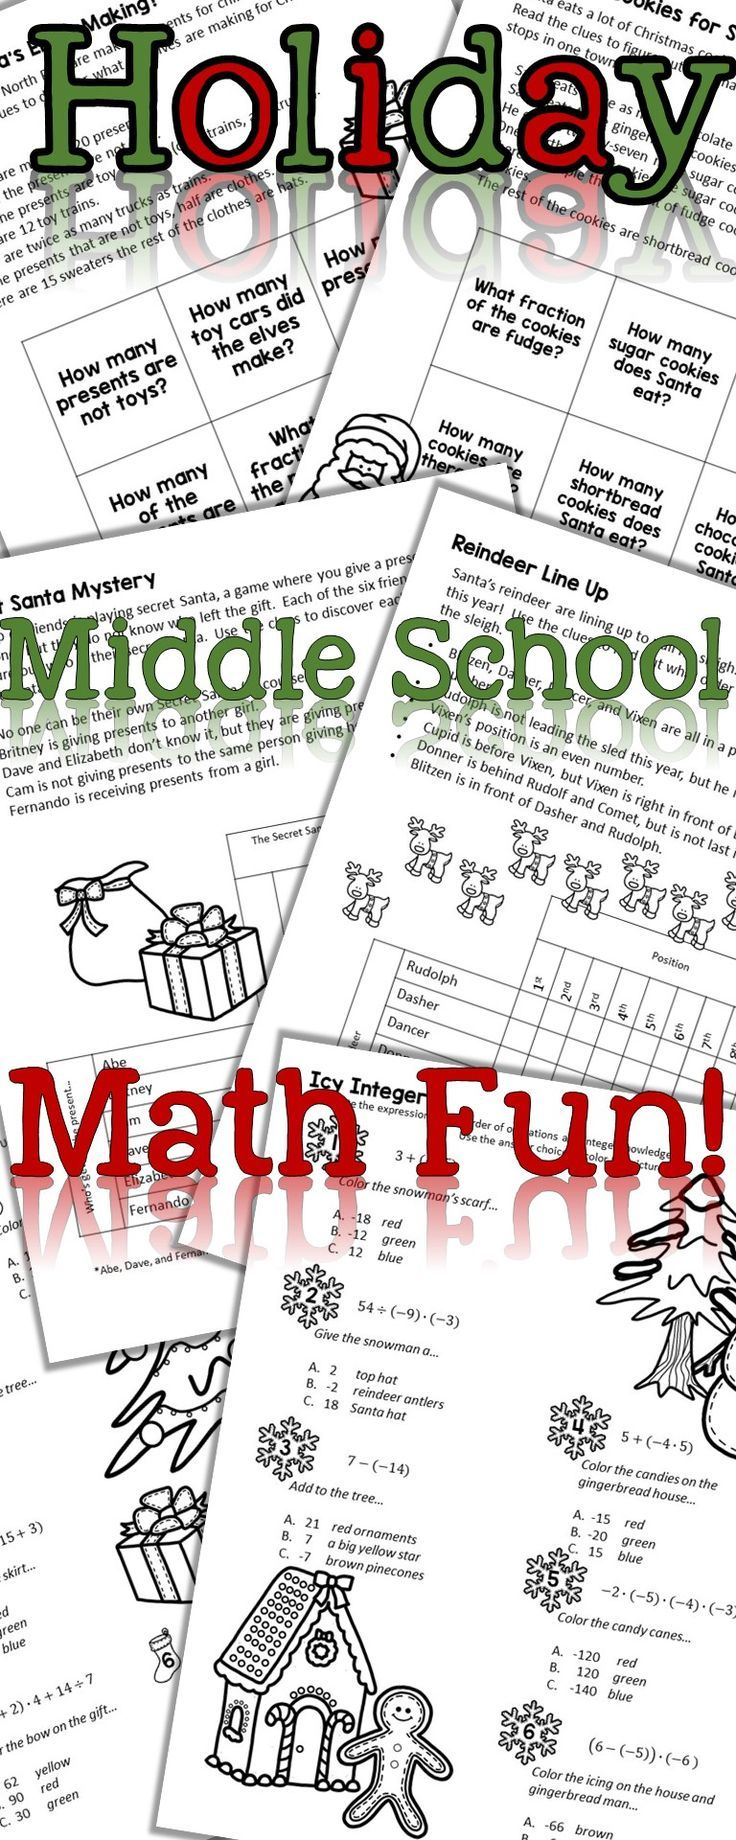 Christmas Math Worksheets For Middle School : Best ideas about maths puzzles on pinterest the facts